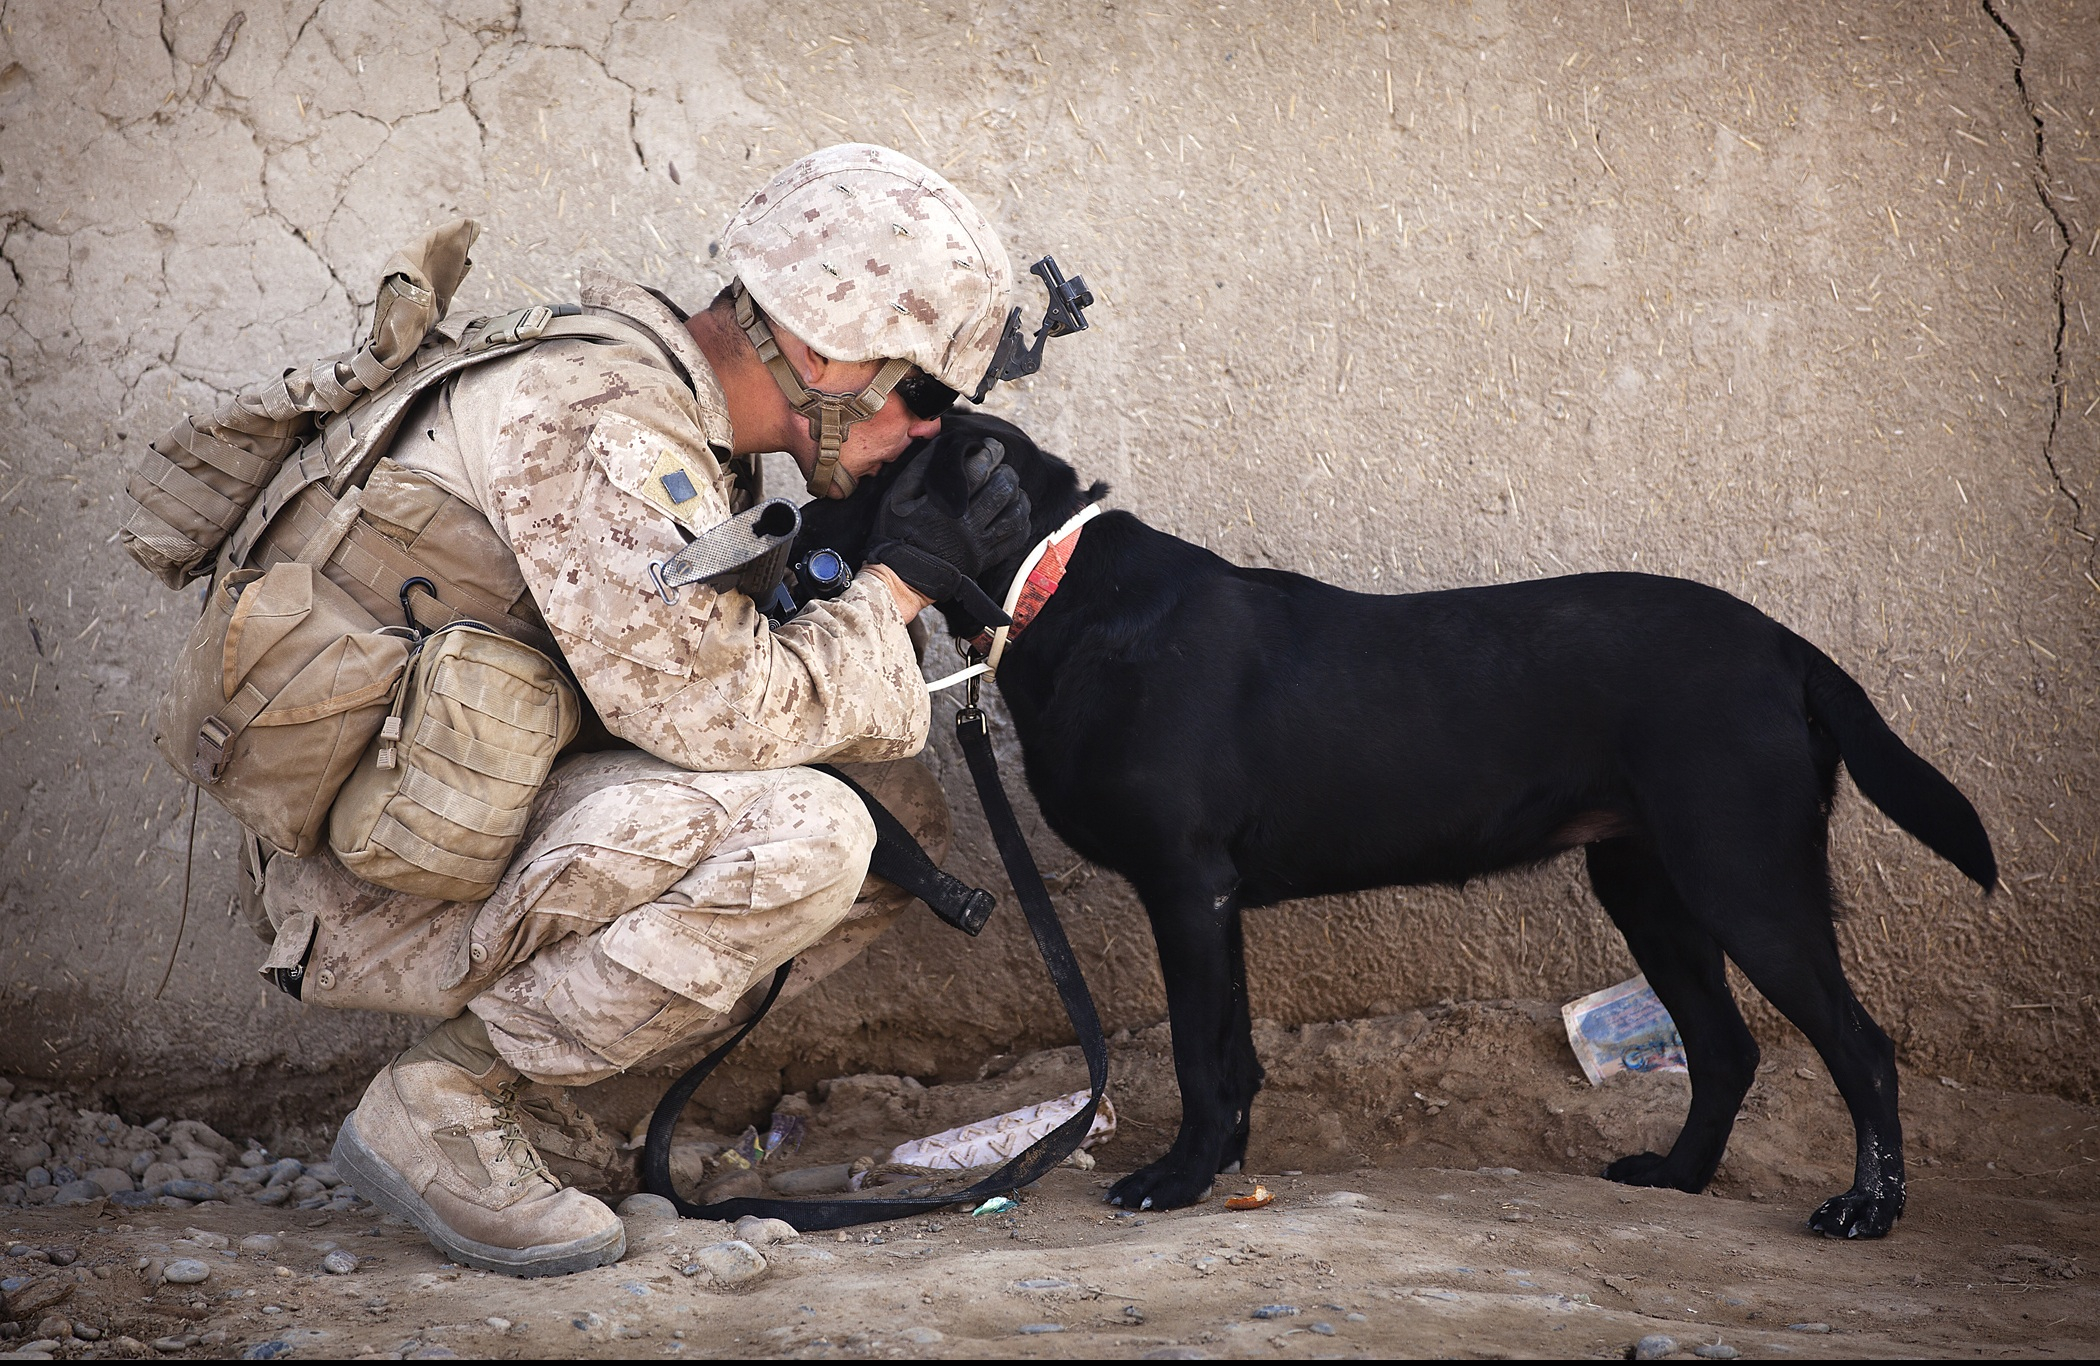 Canva - Soldier and Black Dog Cuddling.jpg